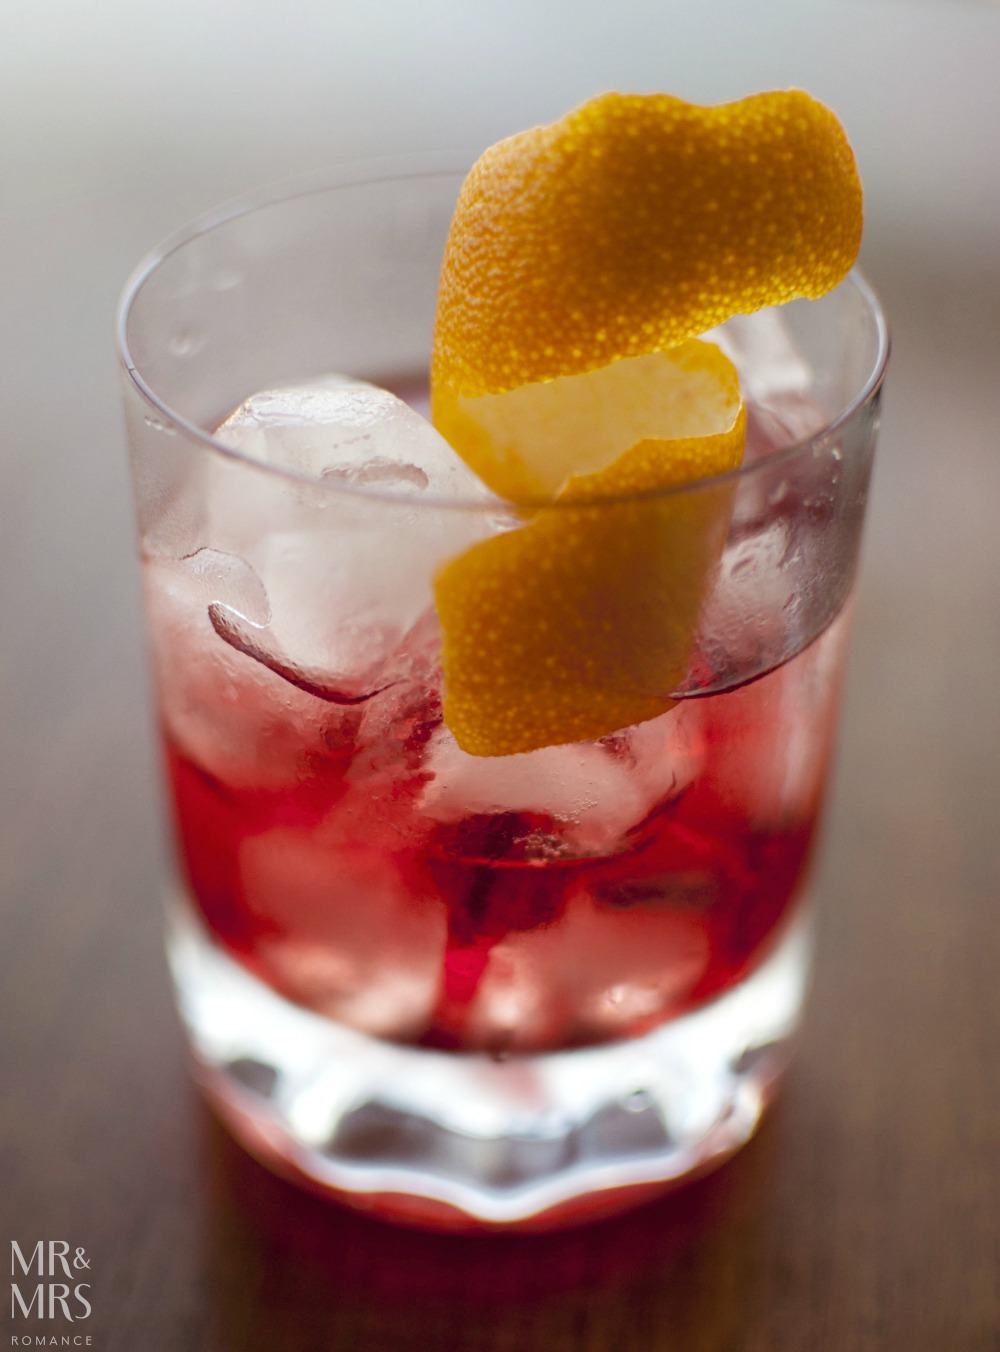 Sloe gin negroni recipe - Mr and Mrs Romance